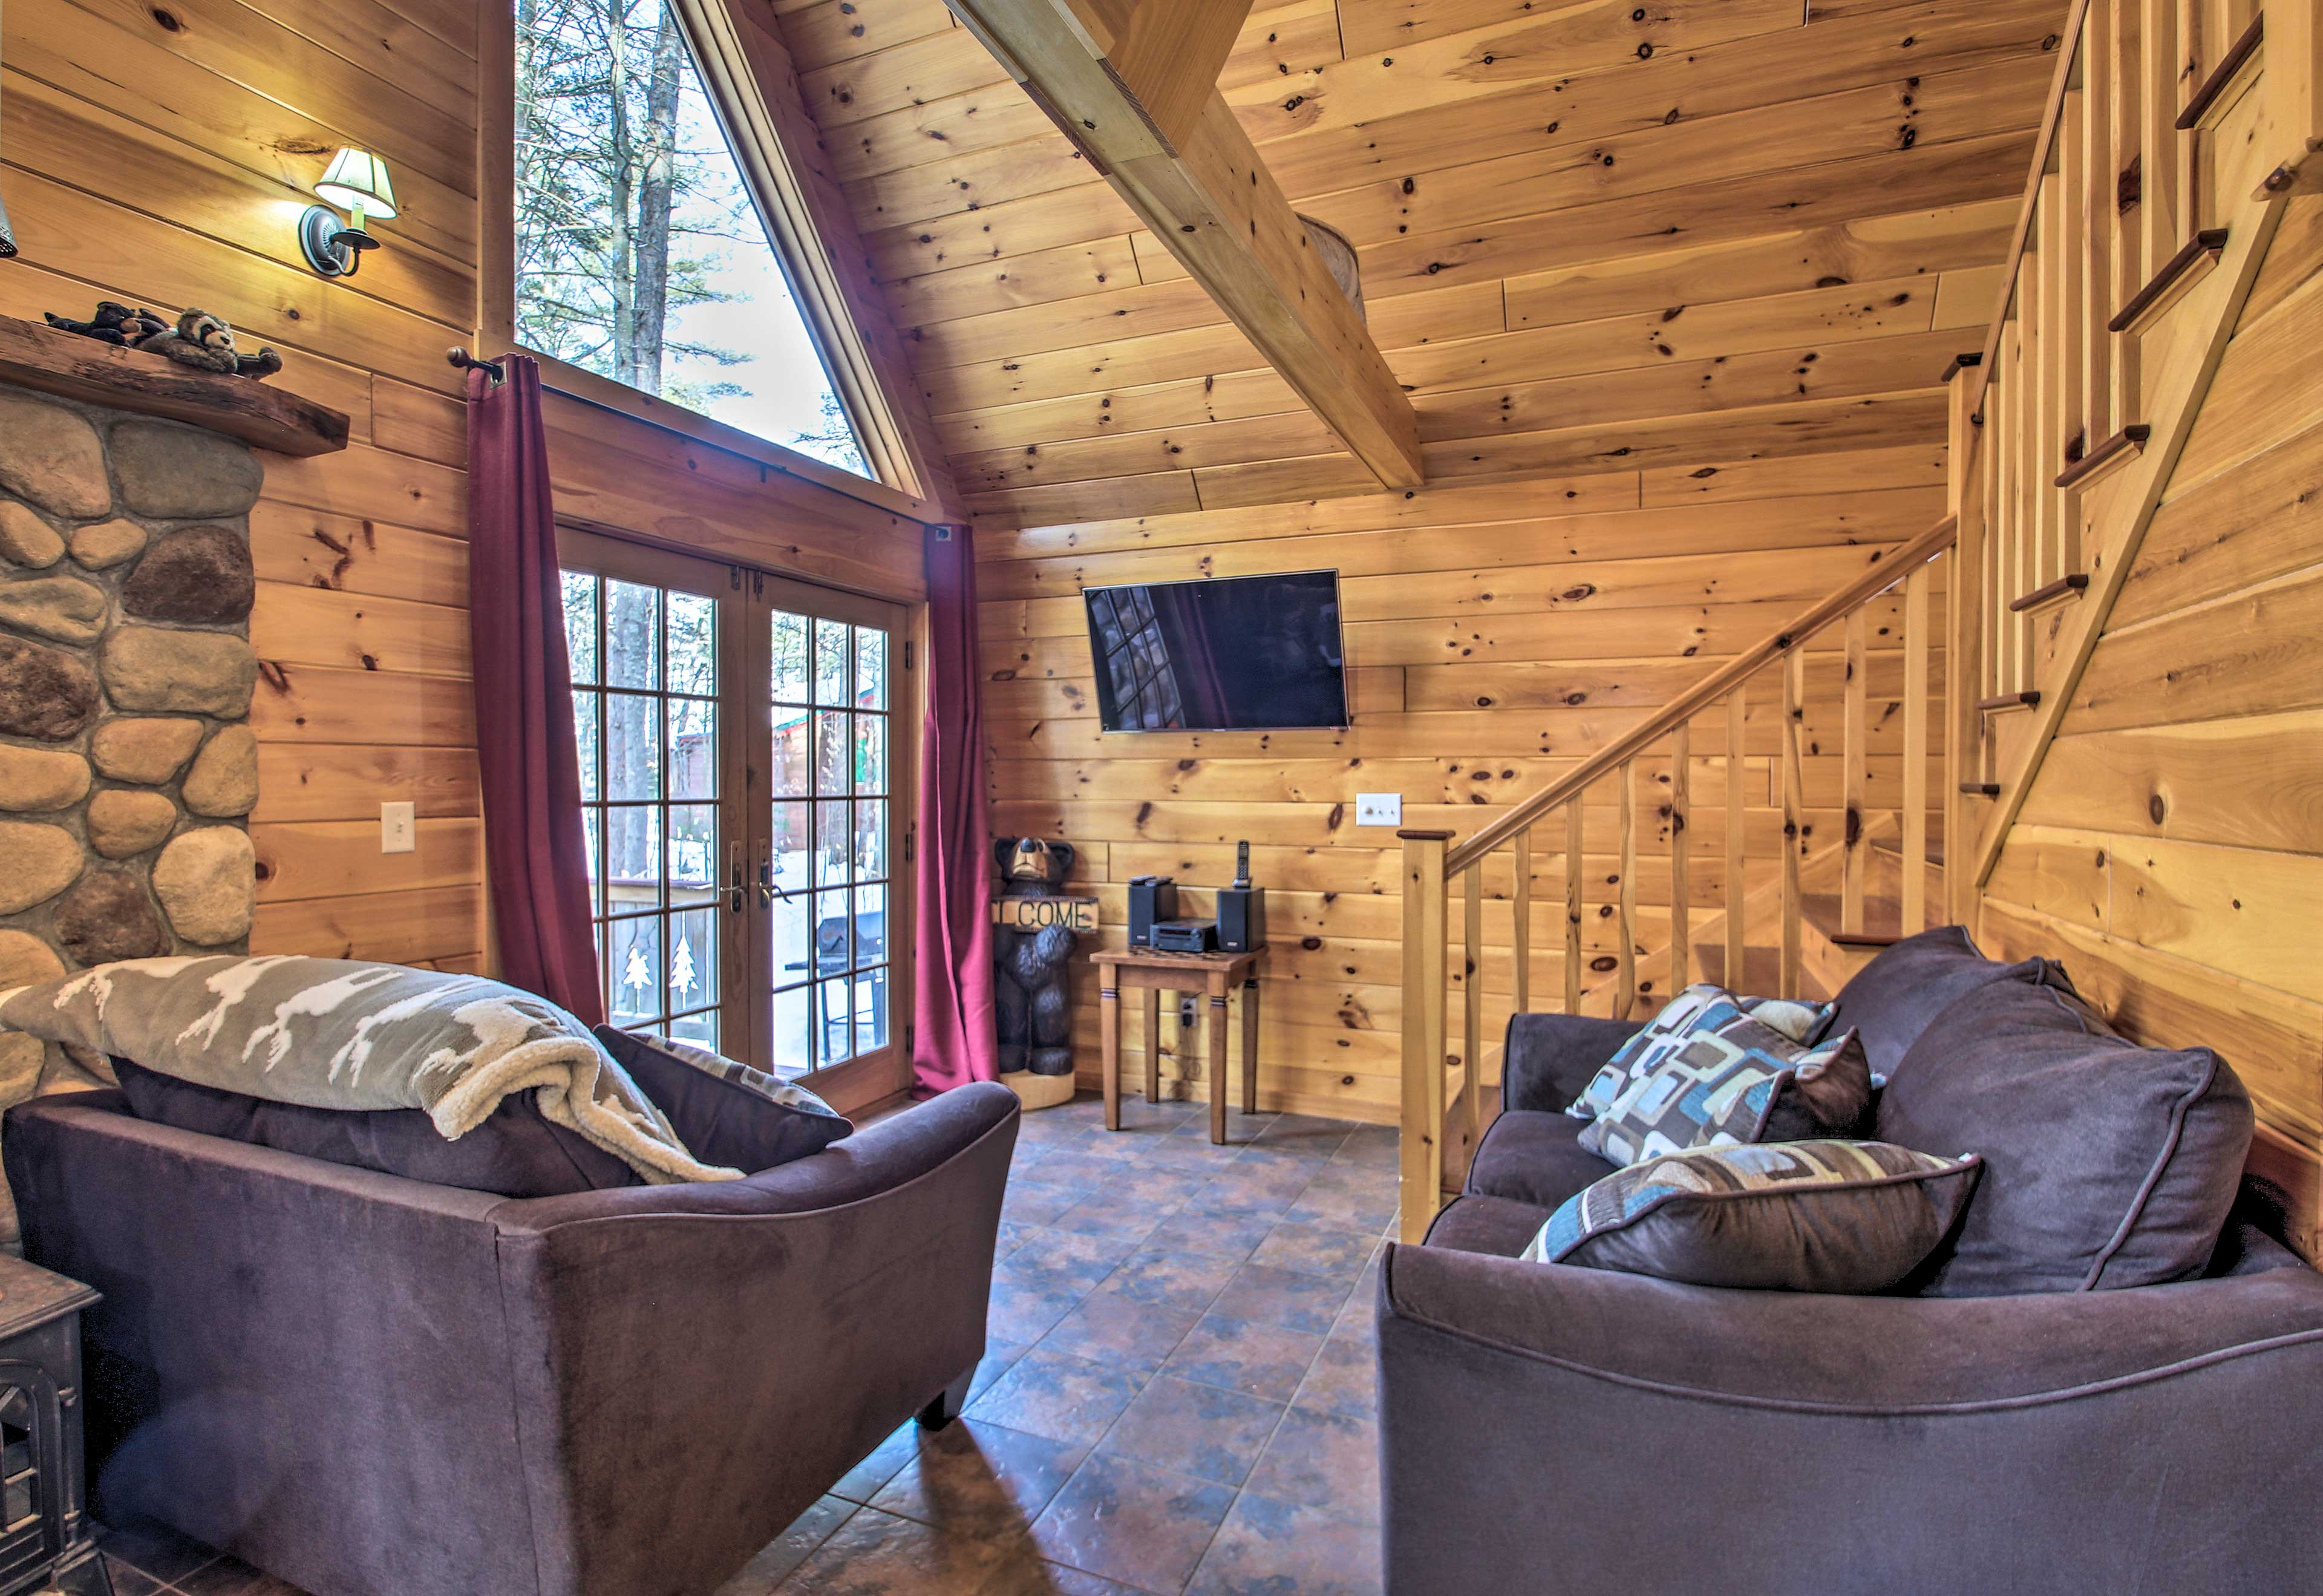 Relax and unwind in the spacious living area, with a wood-burning stove & TV!